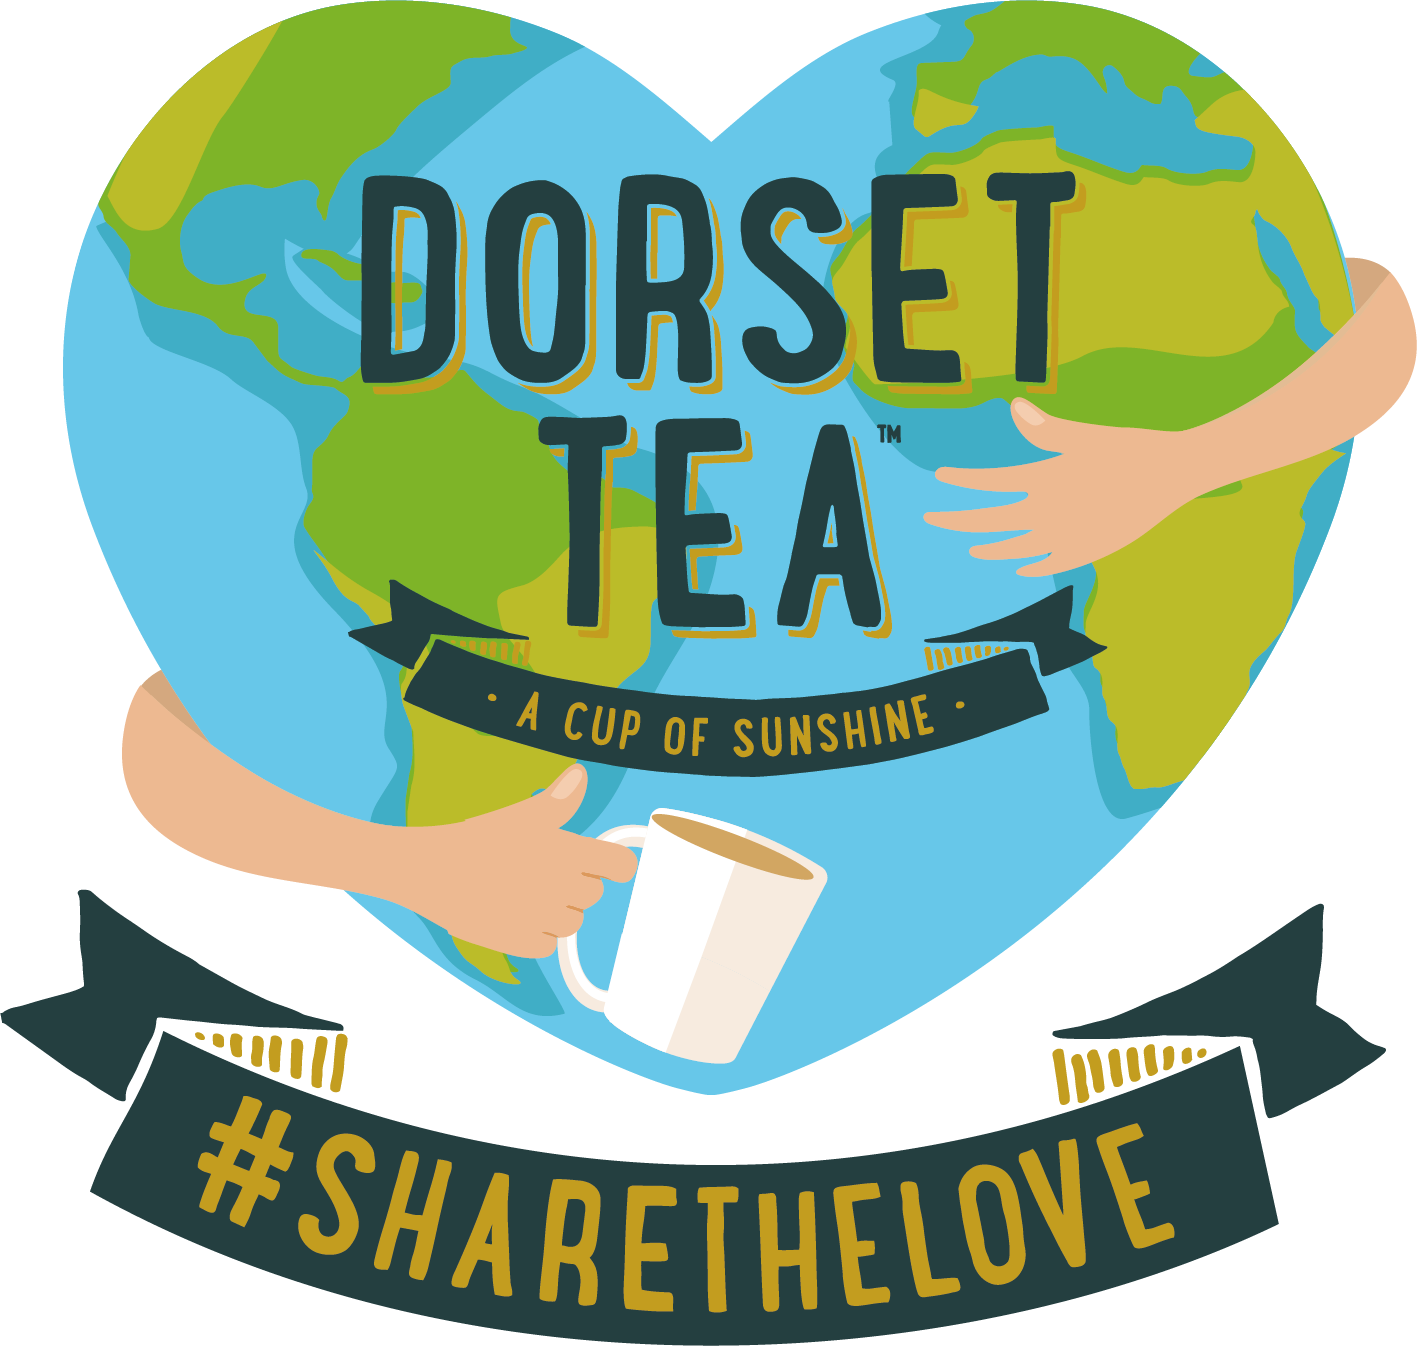 Live, breathe, drink: Dorset Tea